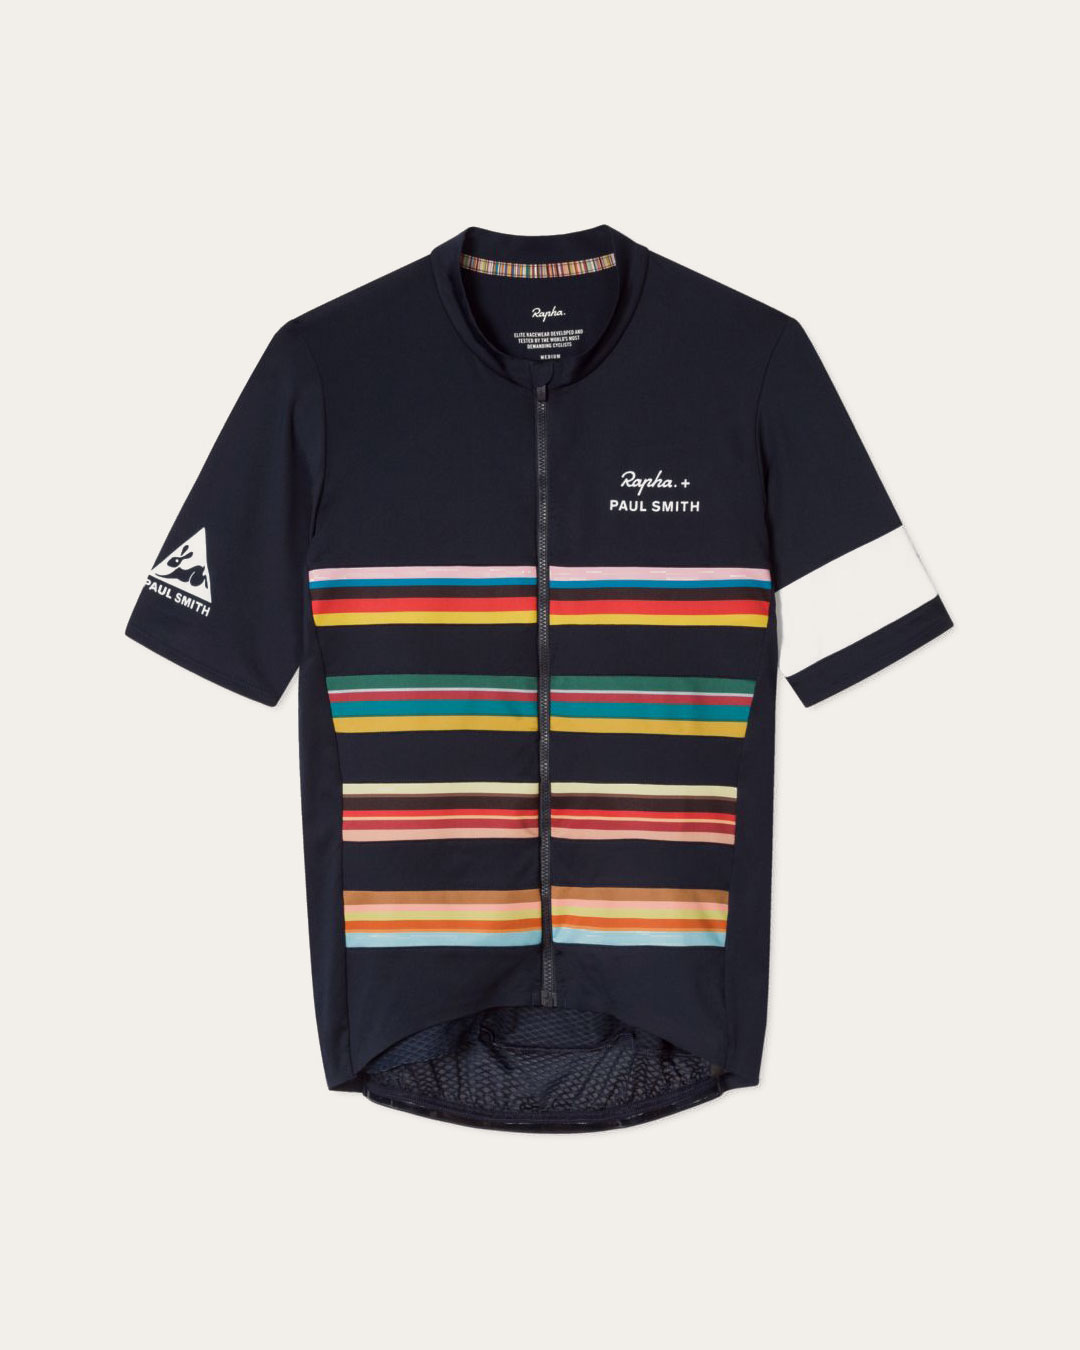 RAPHA X PAUL SMITH